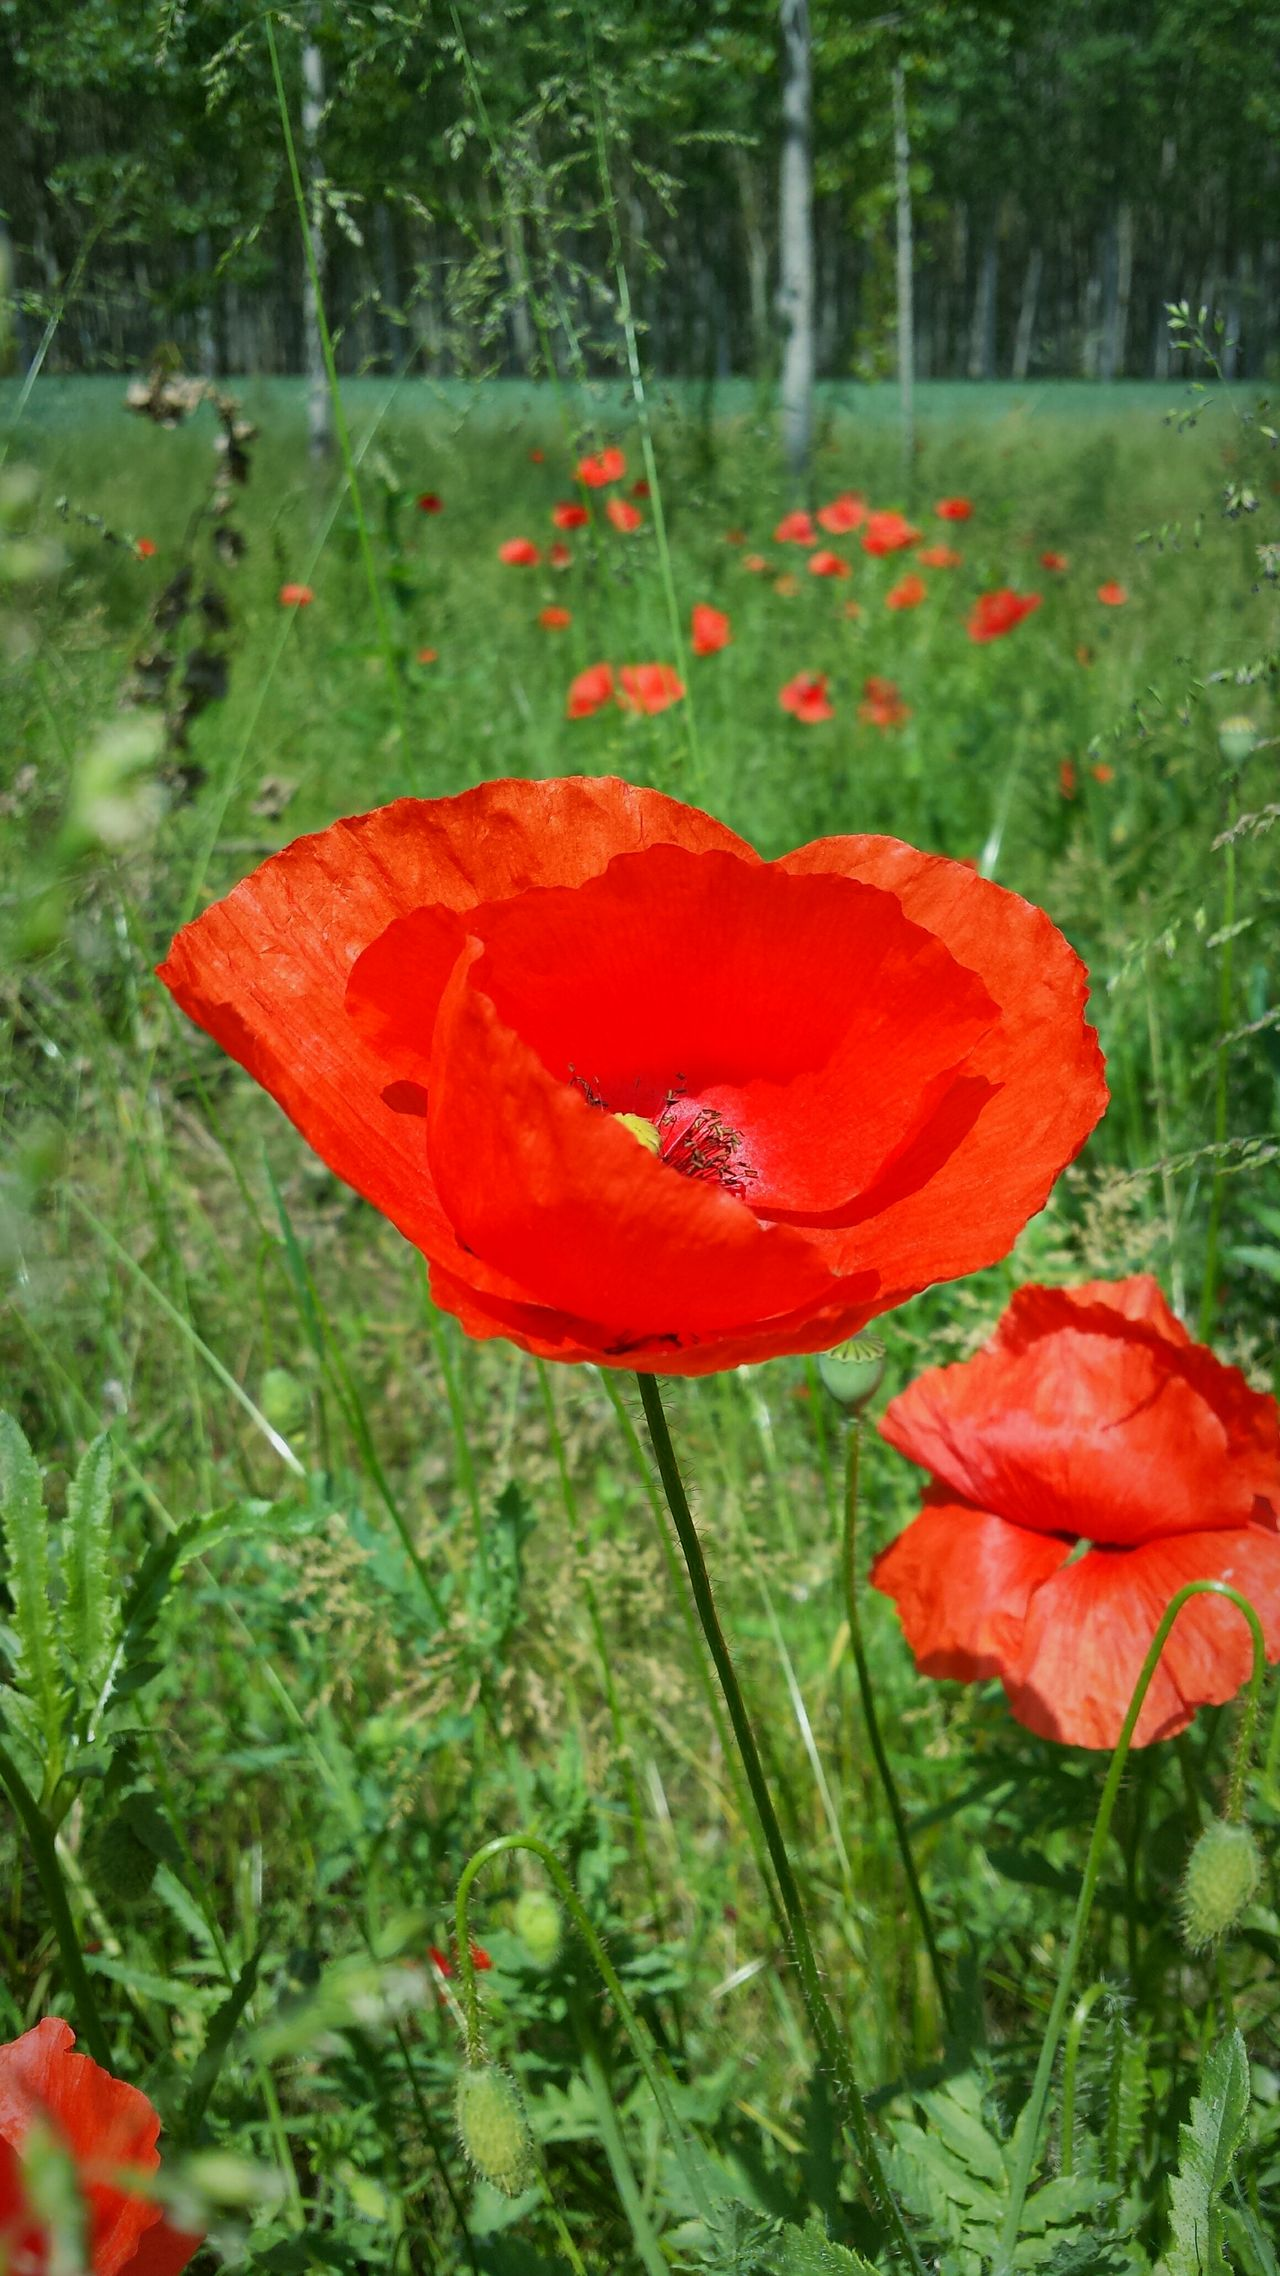 Red Growth Nature Plant Grass Poppy Day Outdoors No People Beauty In Nature Flower Field Close-up Forest Fragility Poppy Flower Poppies  Poppies In Bloom Red Poppies